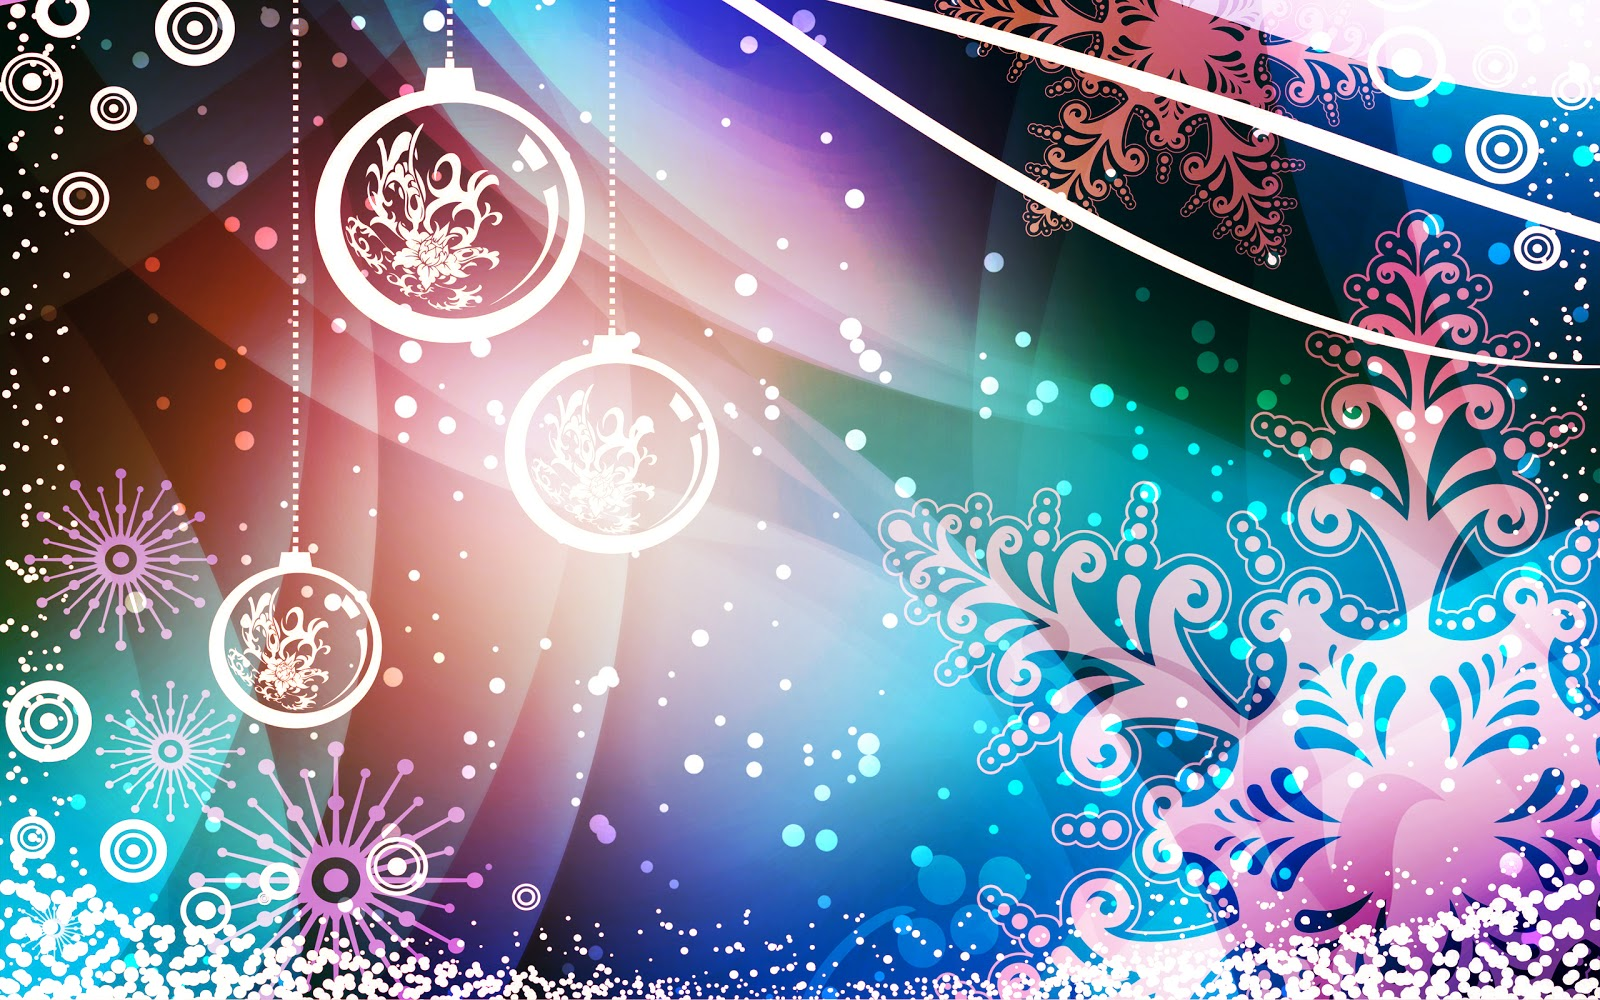 christmas wallpaper download merry - photo #11